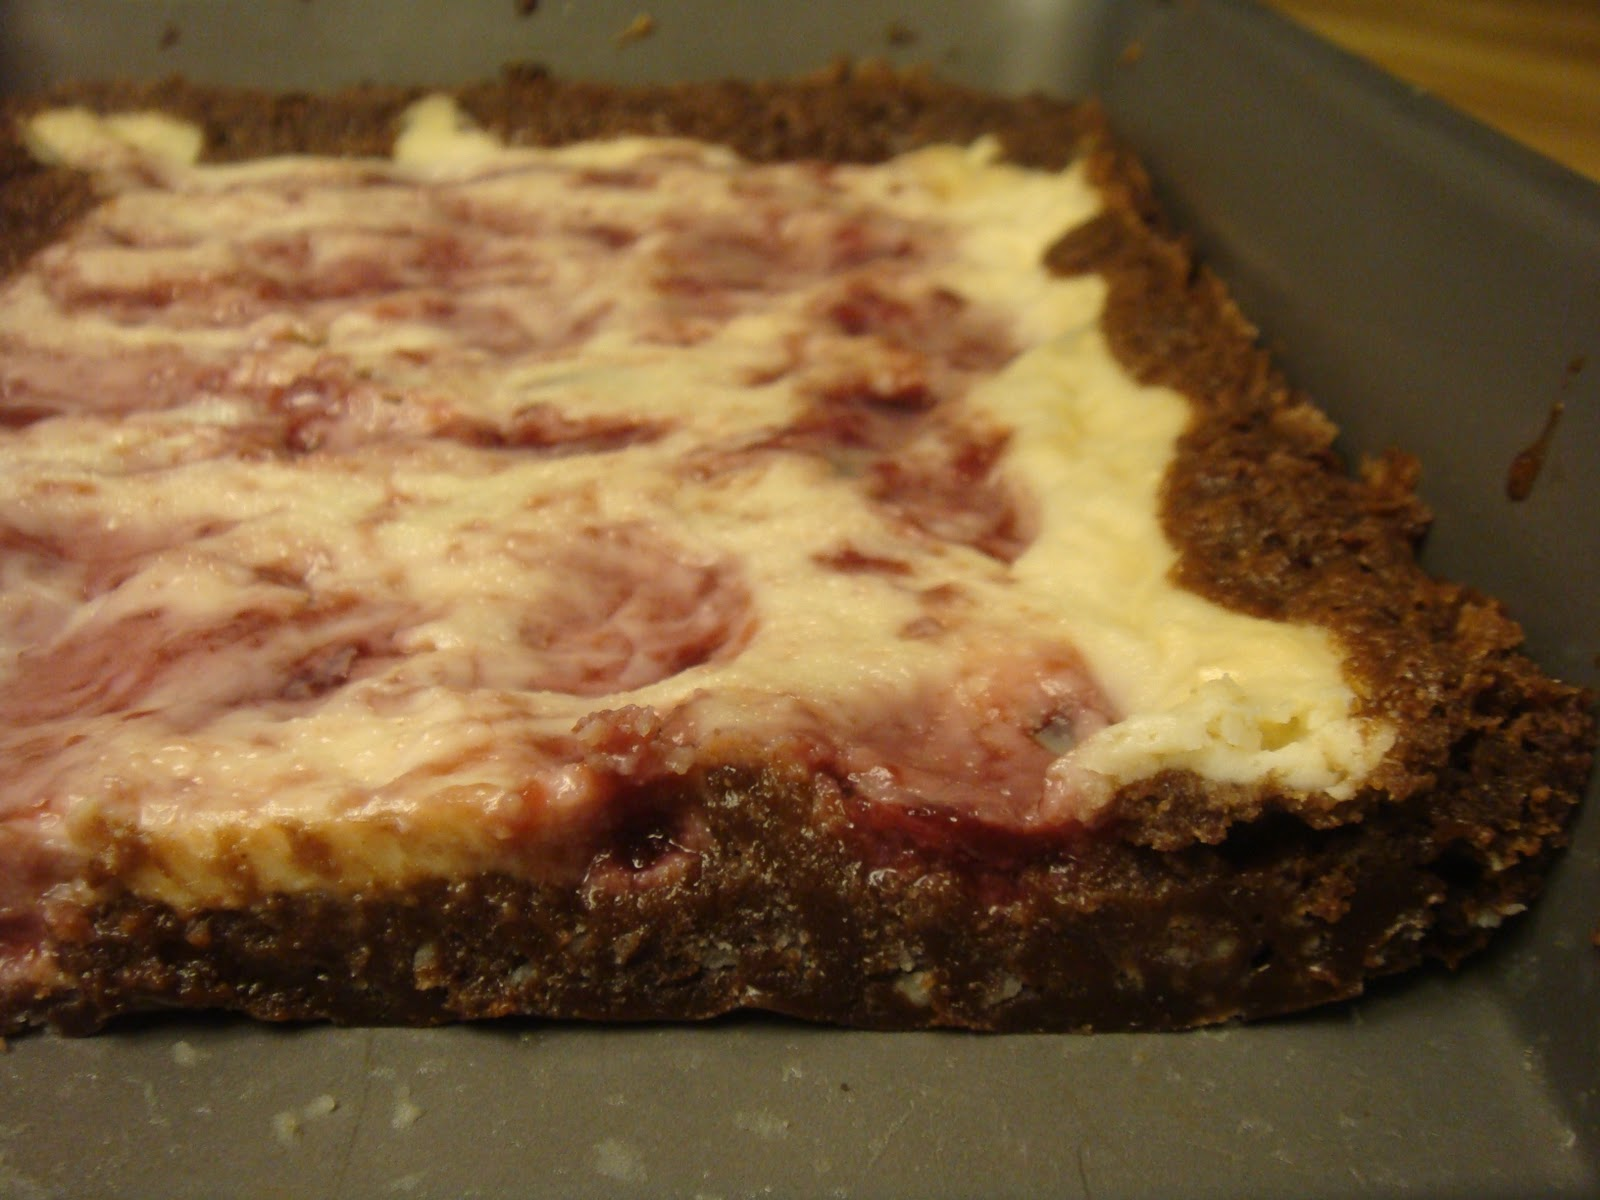 ... : Vegan, Gluten-Free Raspberry Cheesecake Brownies - Jan. 11, 2012